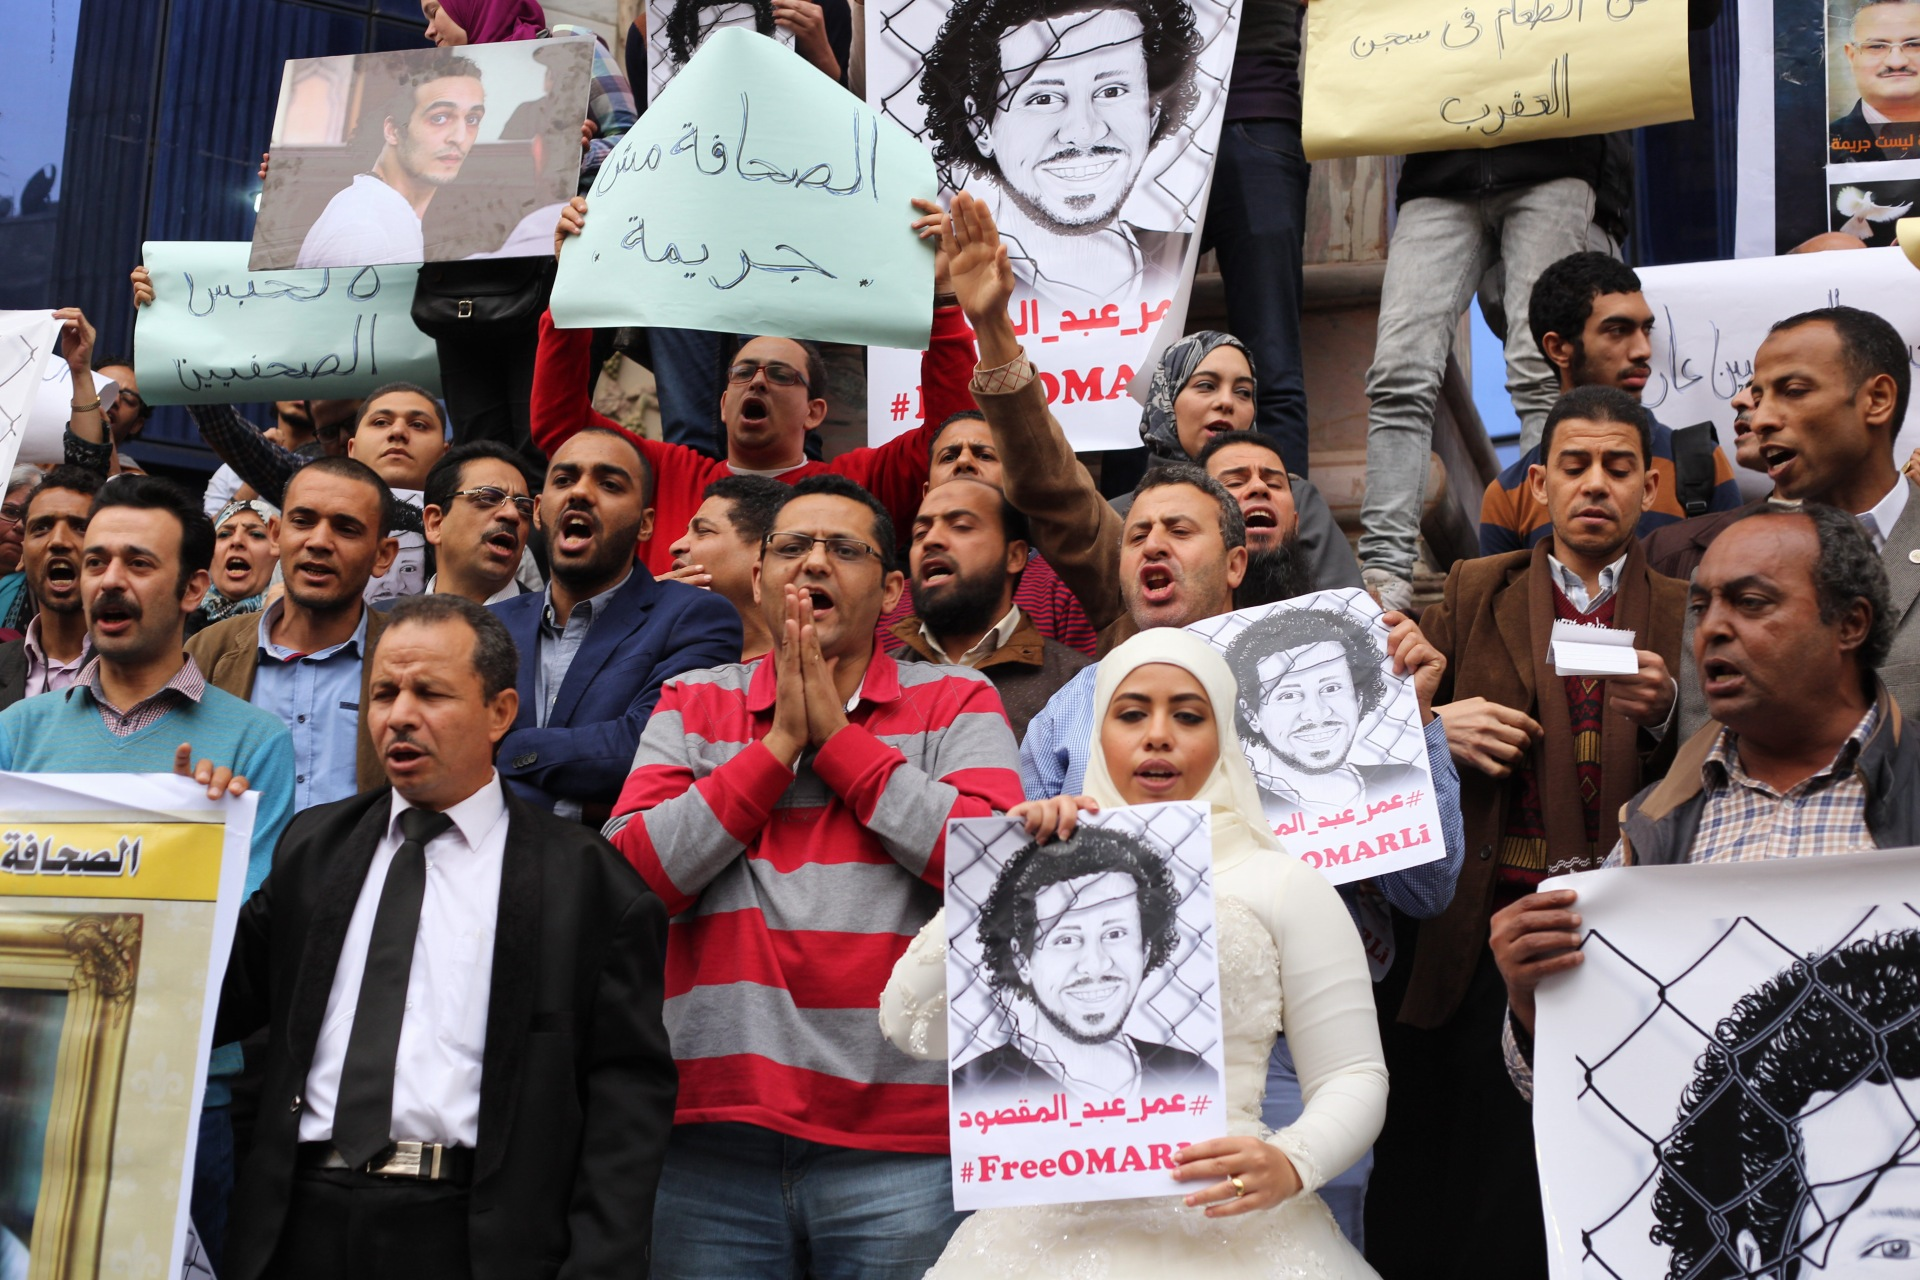 Journalists protest at Press Syndicate in March 2016 demanding medical treatment and release of detained colleagues. (Photo by Ahmed Hendawy)